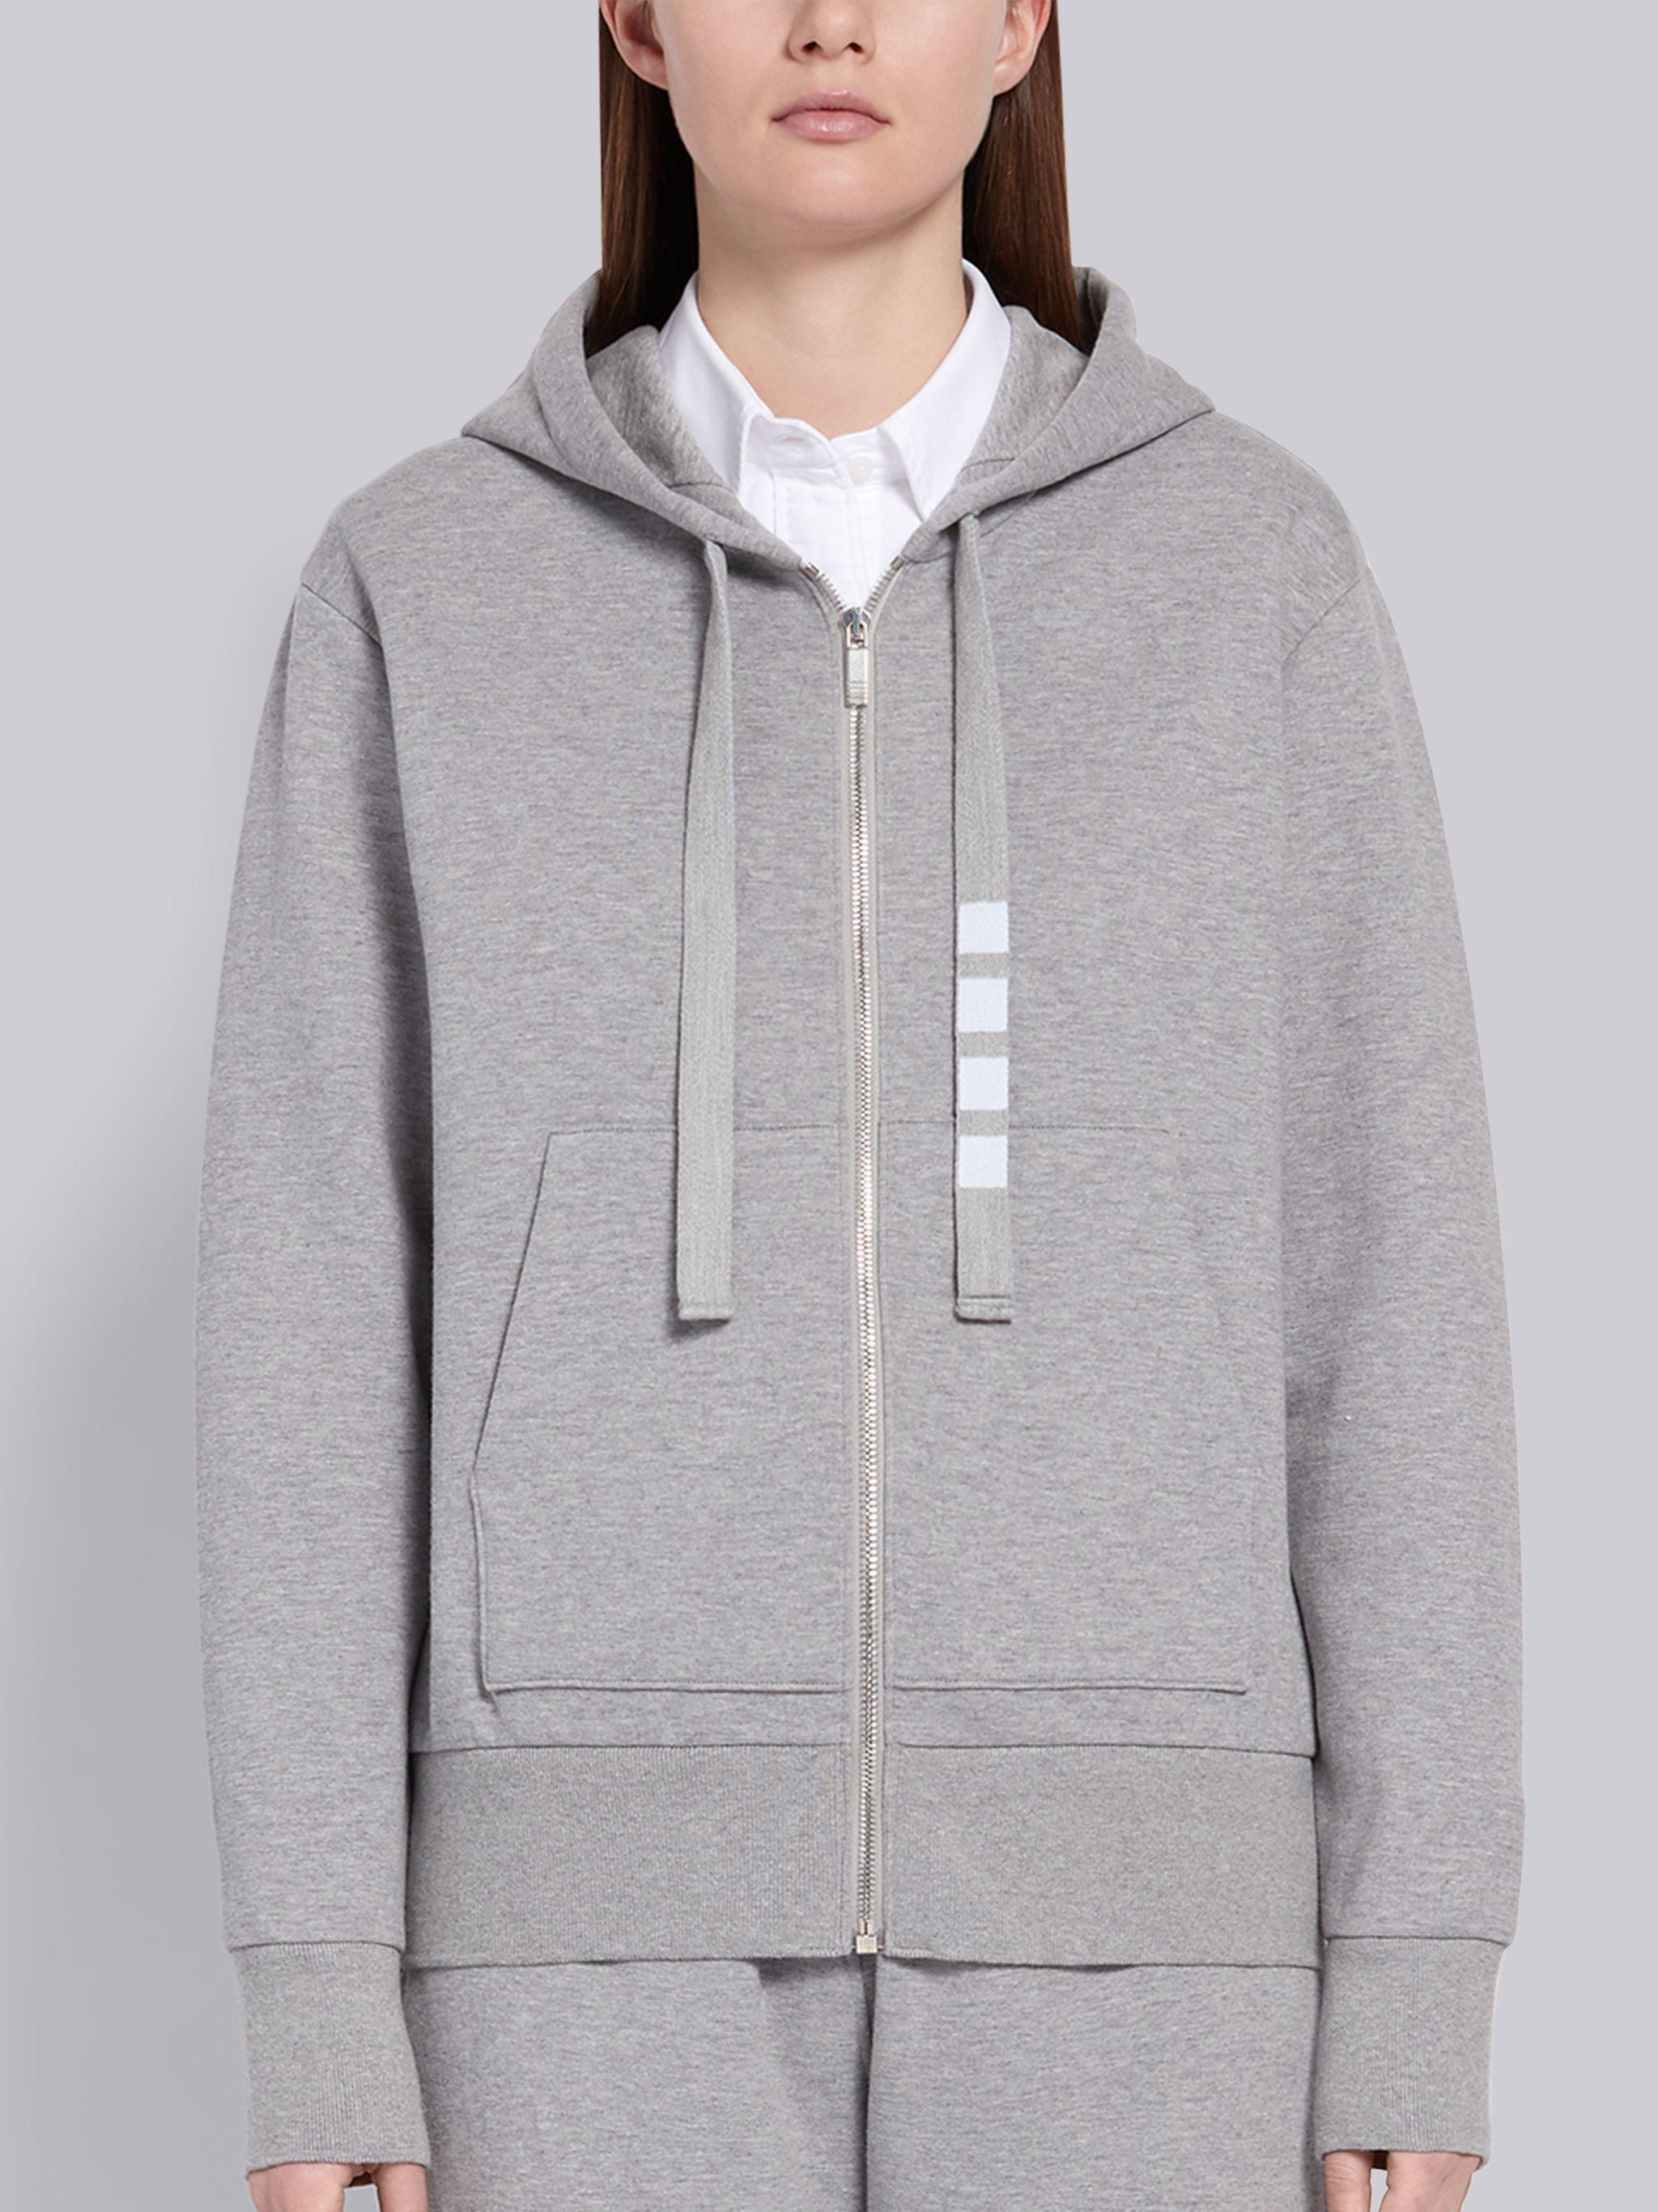 Light Grey Compact Double Knit Cotton Zip-up 4-Bar Hoodie